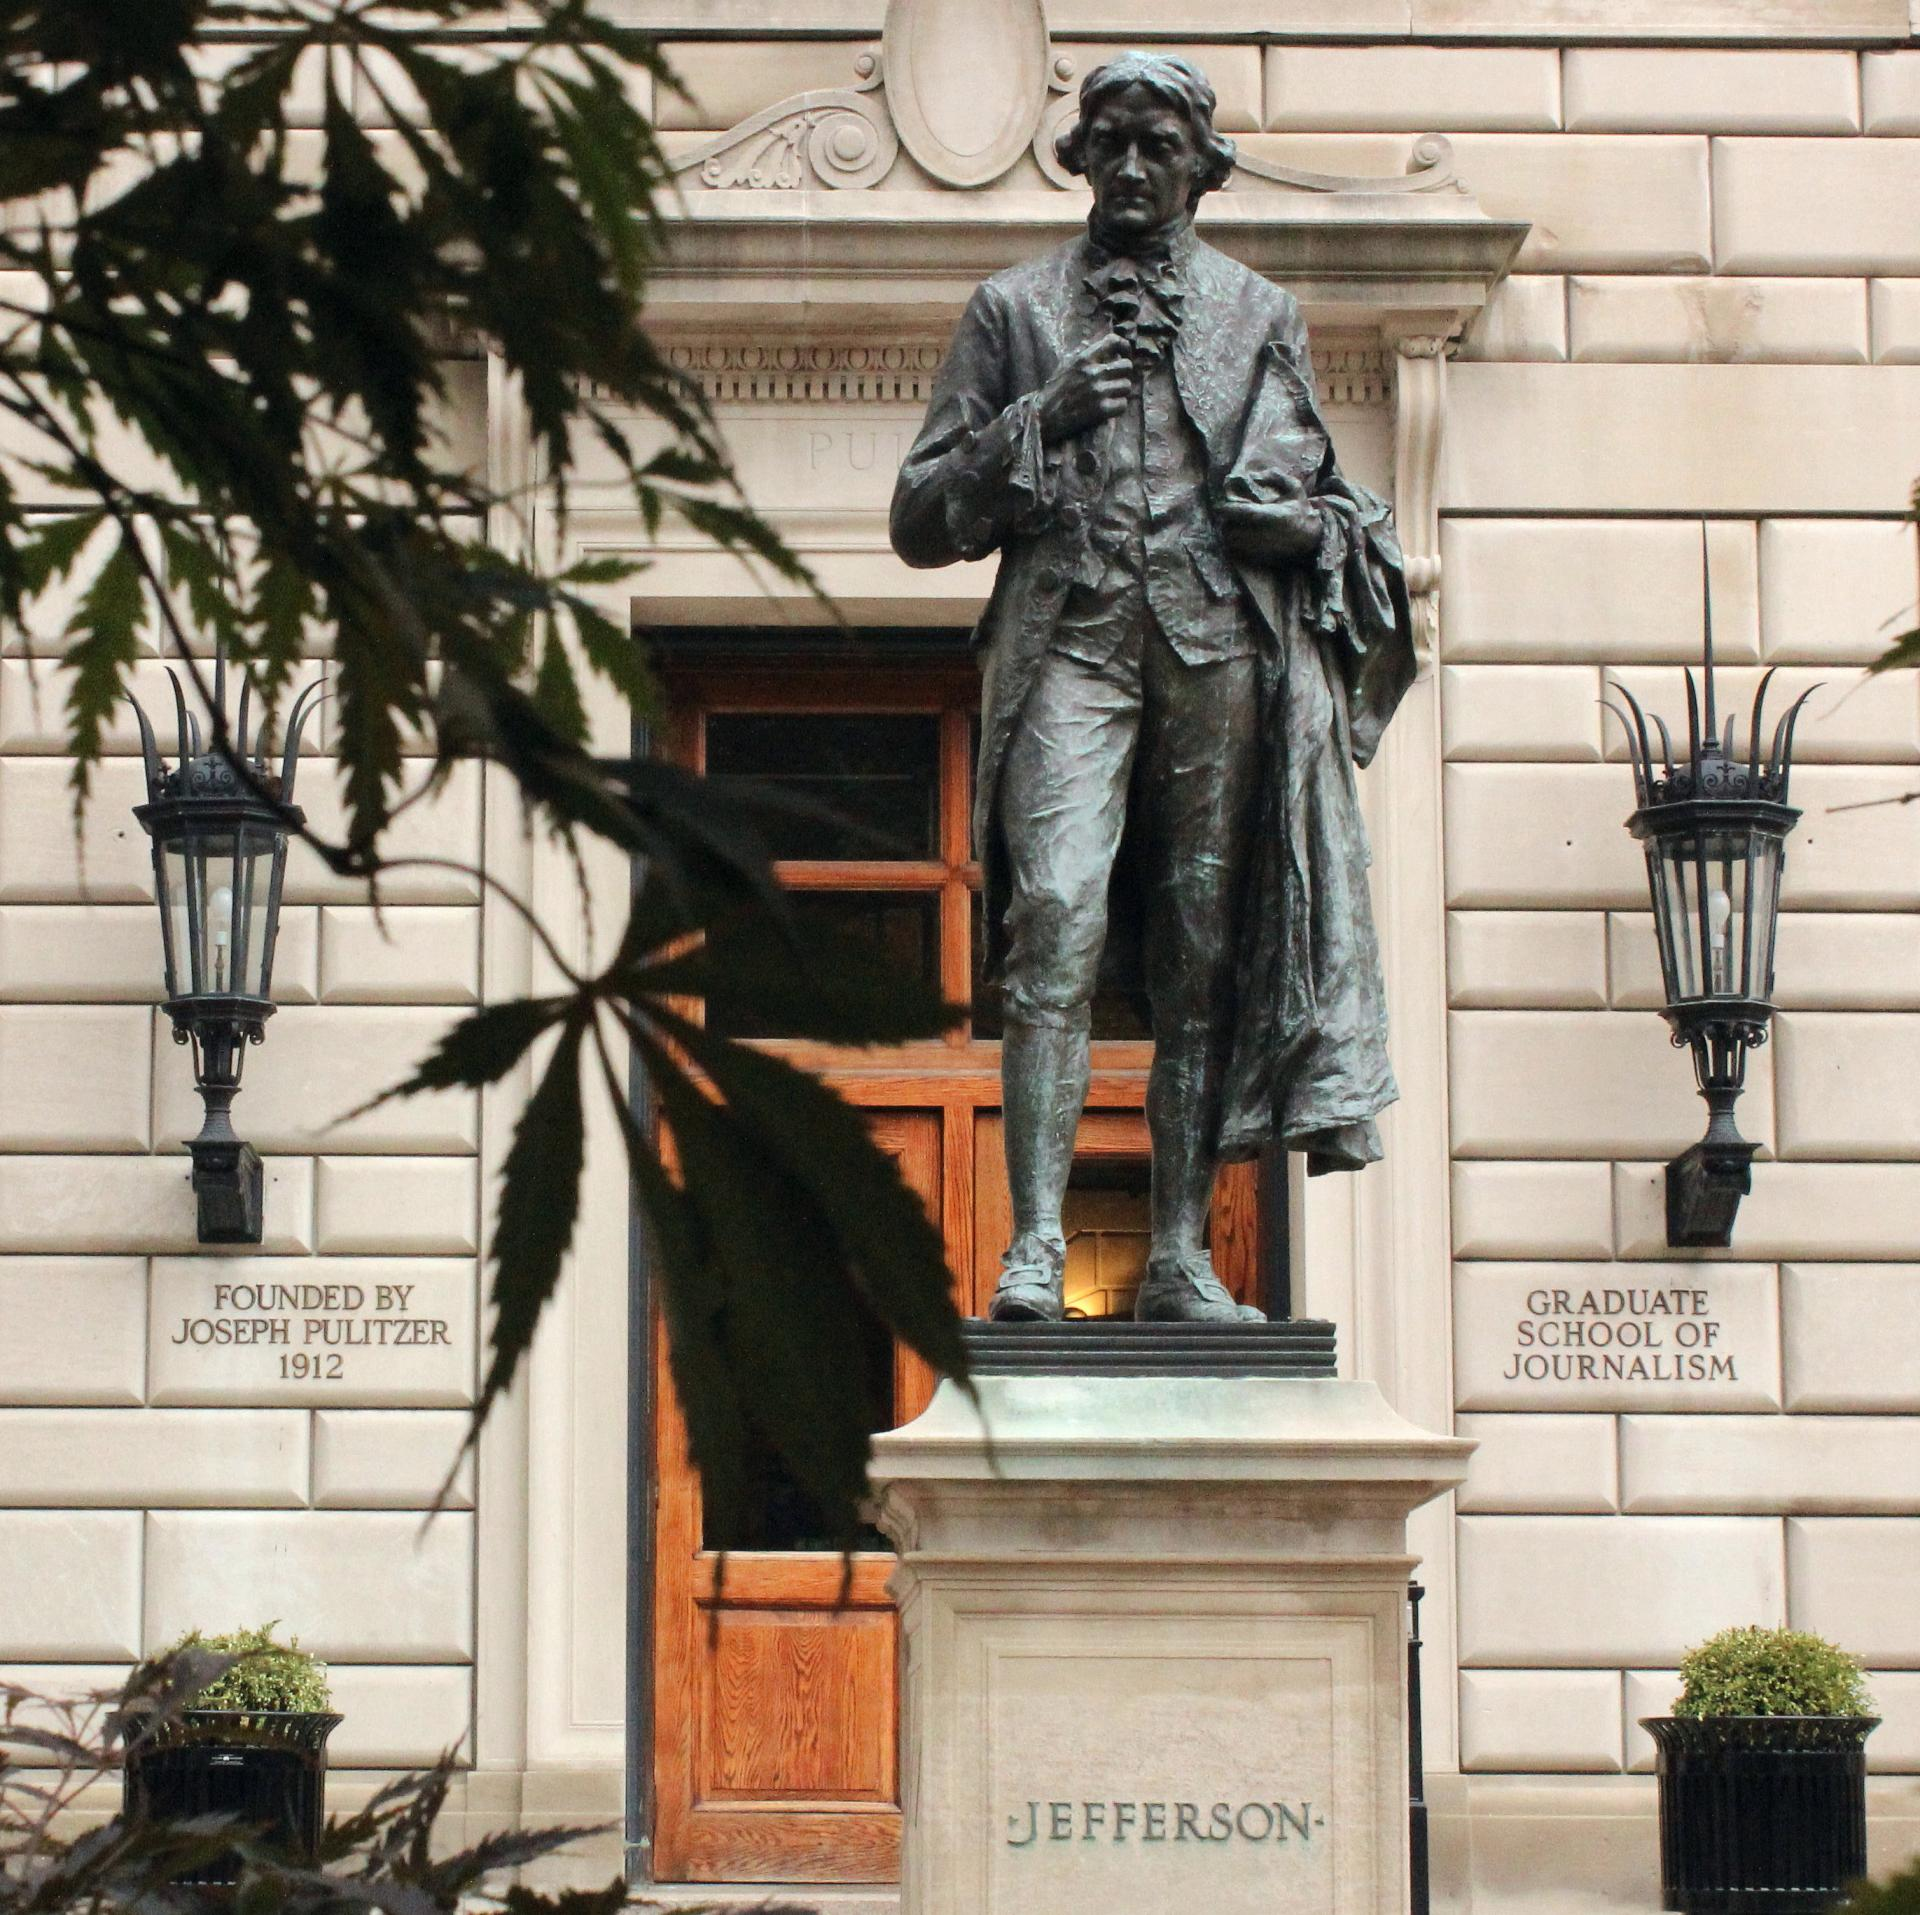 Statue of Thomas Jefferson outside Pulitzer Hall, the School of Journalism